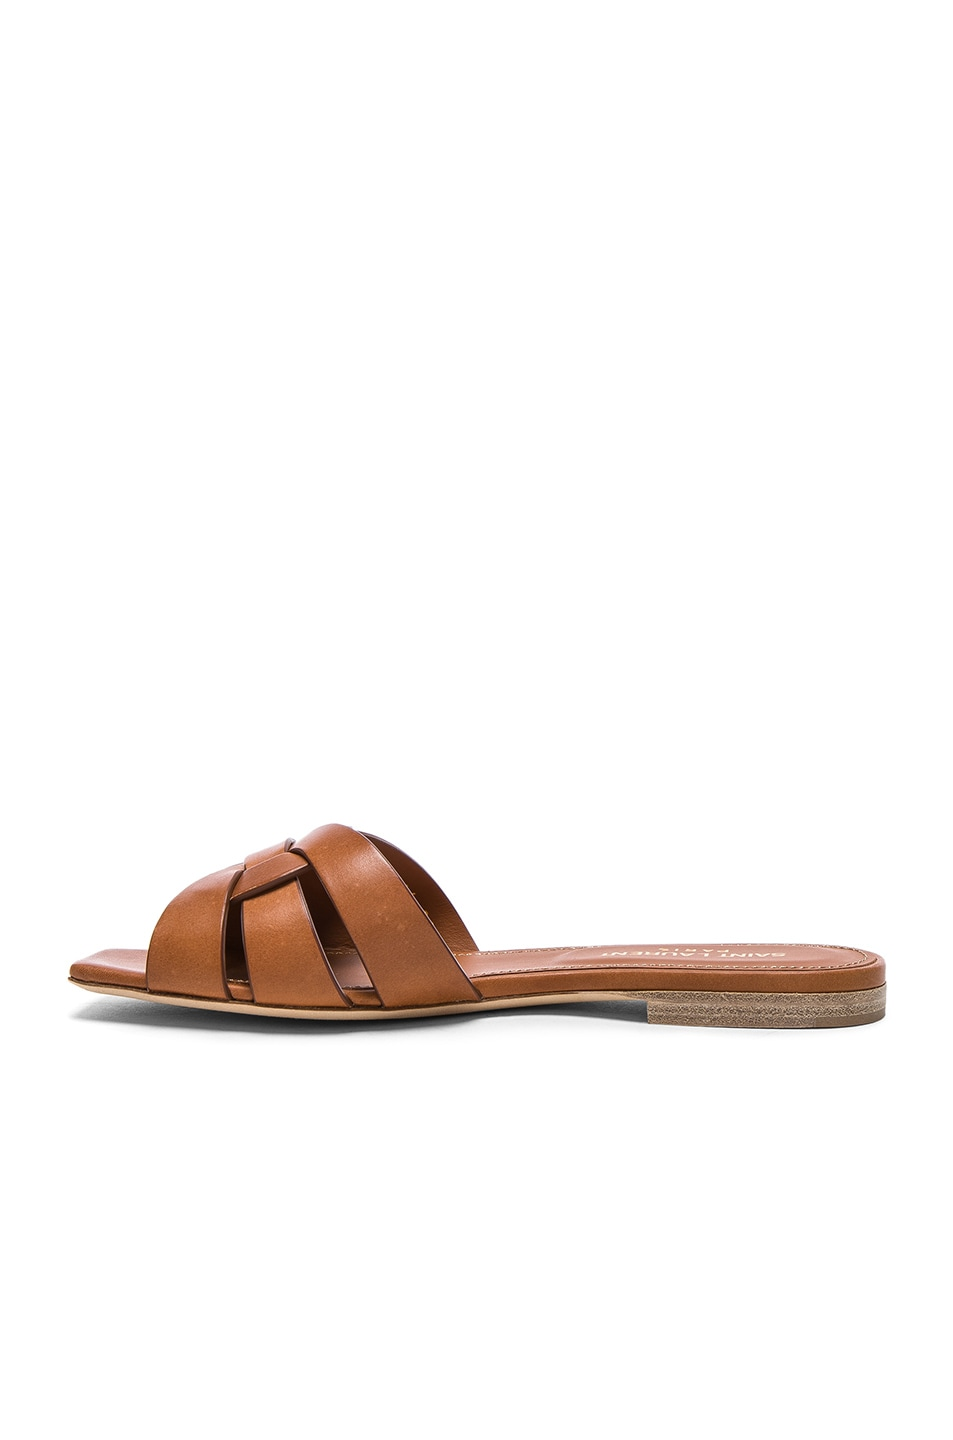 Image 5 of Saint Laurent Nu Pieds Leather Slides in Amber